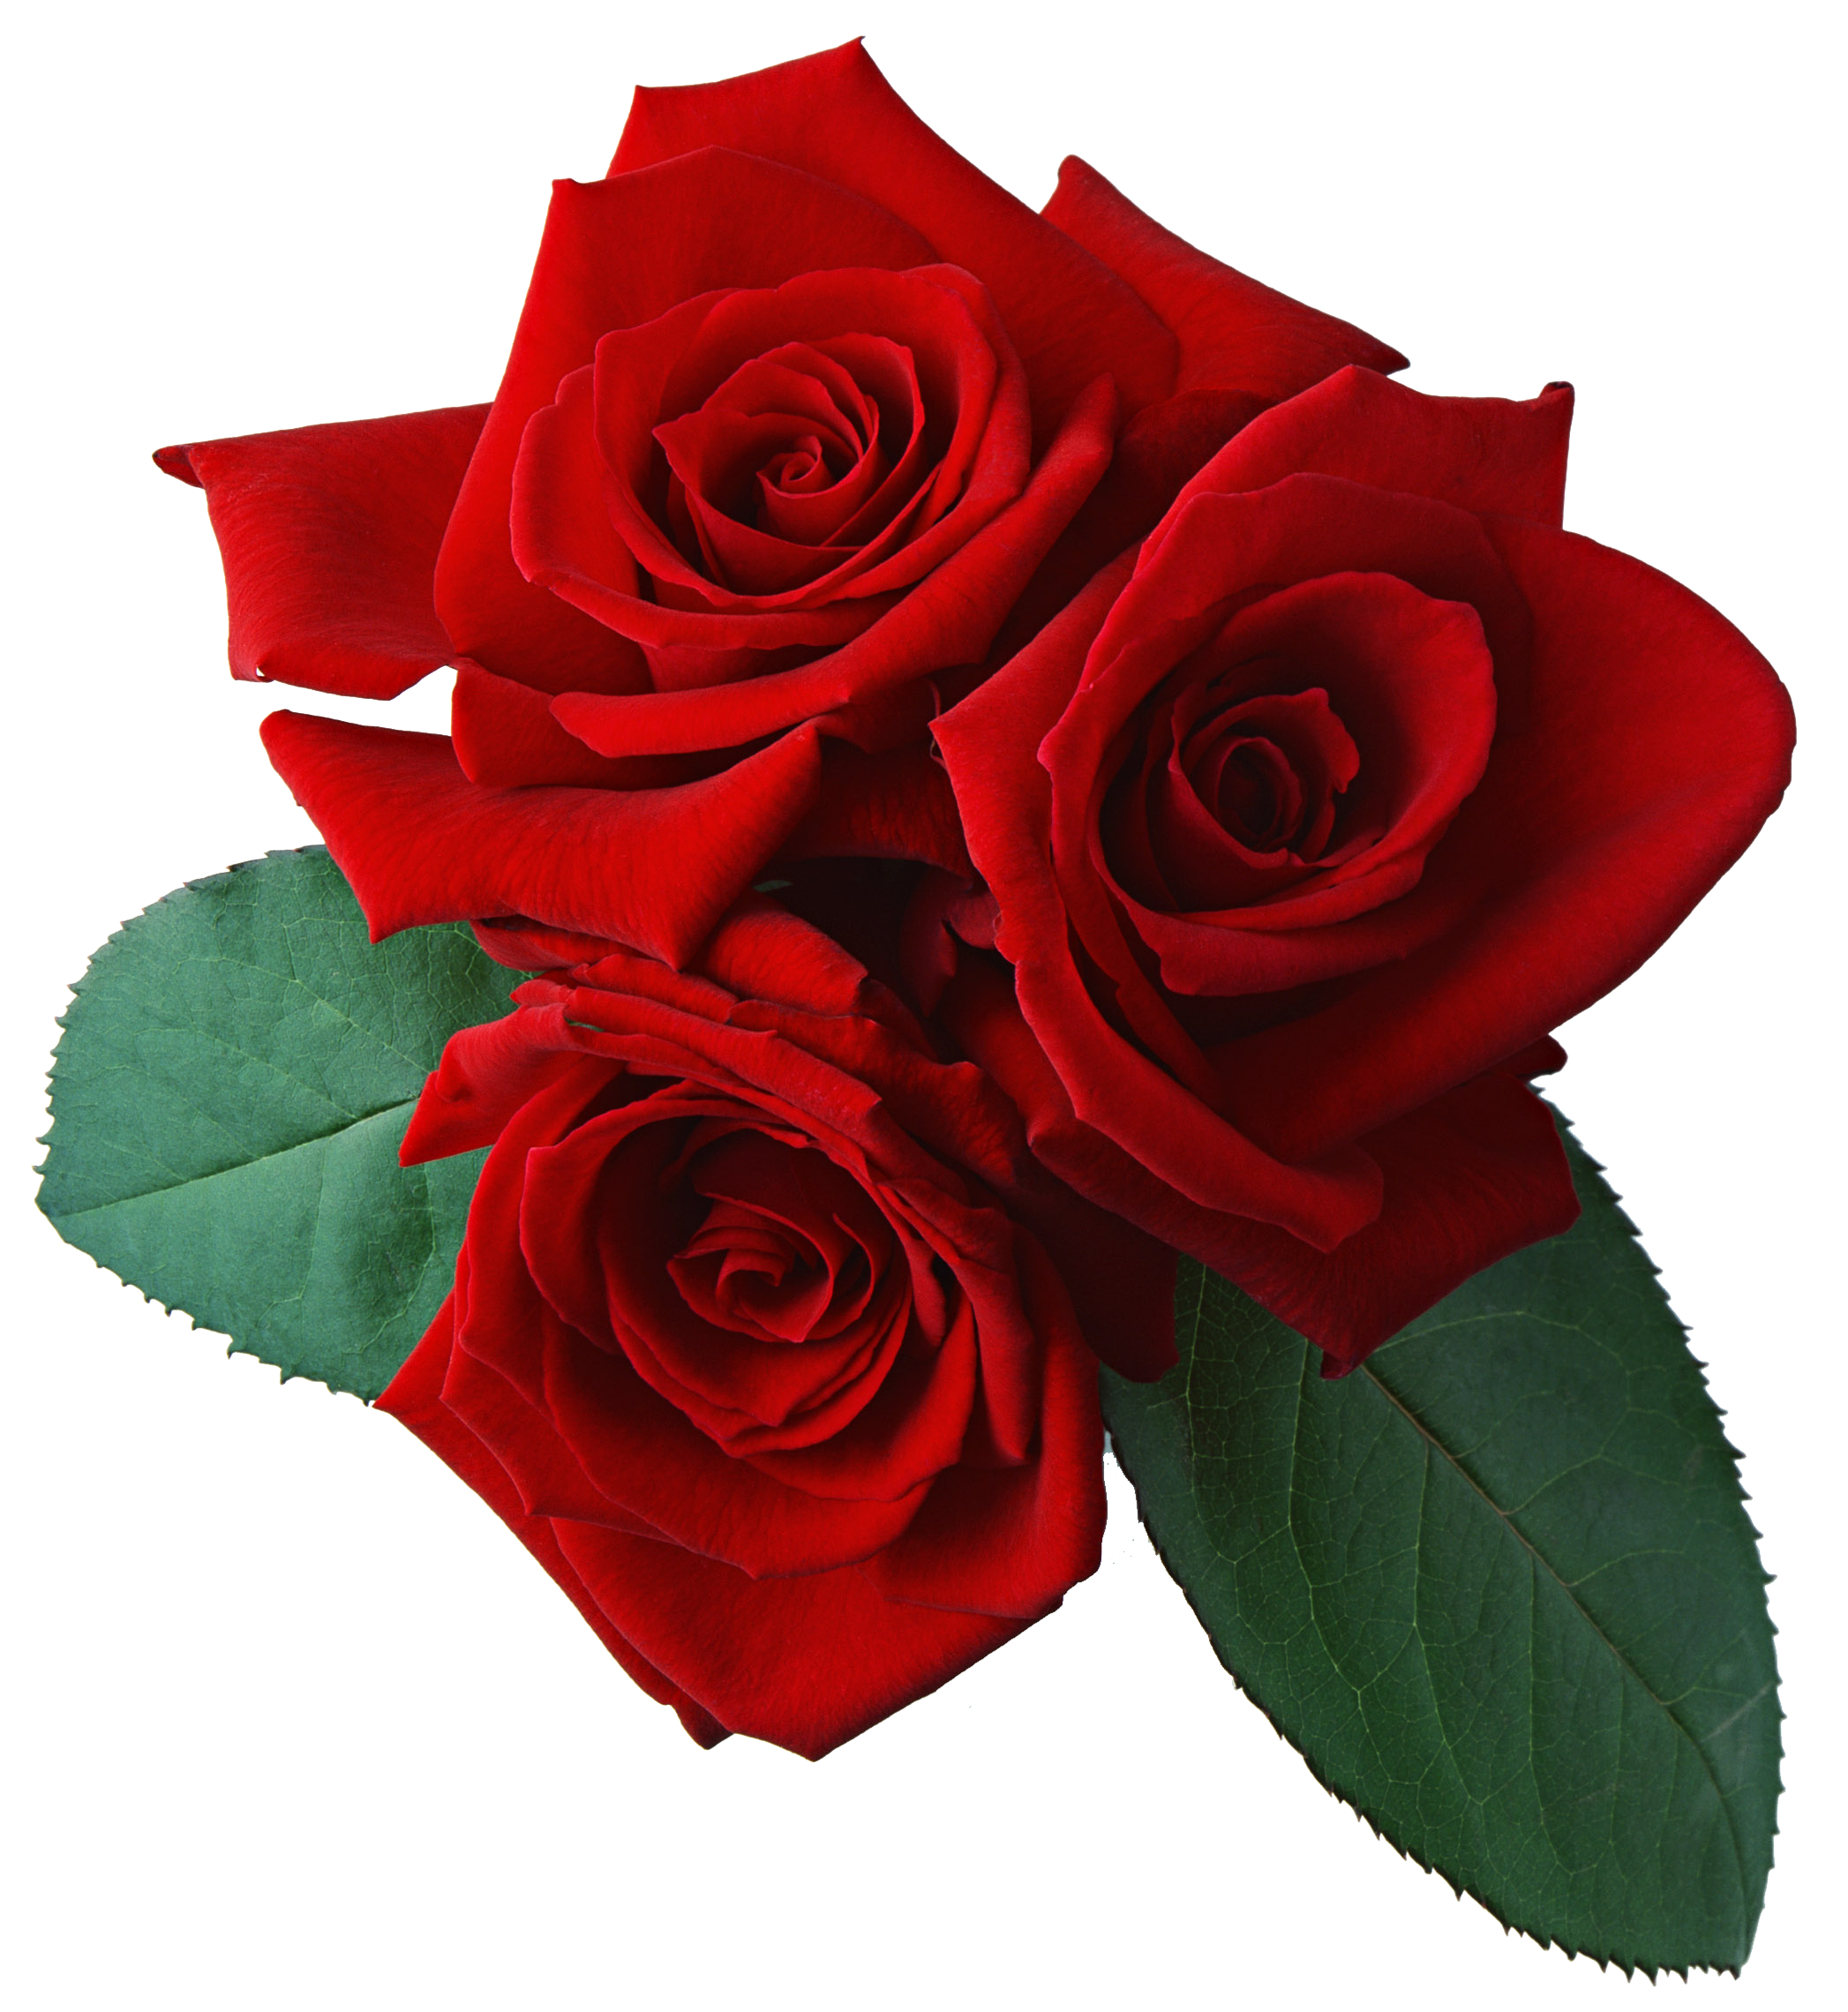 Three red rose flower. Roses png images